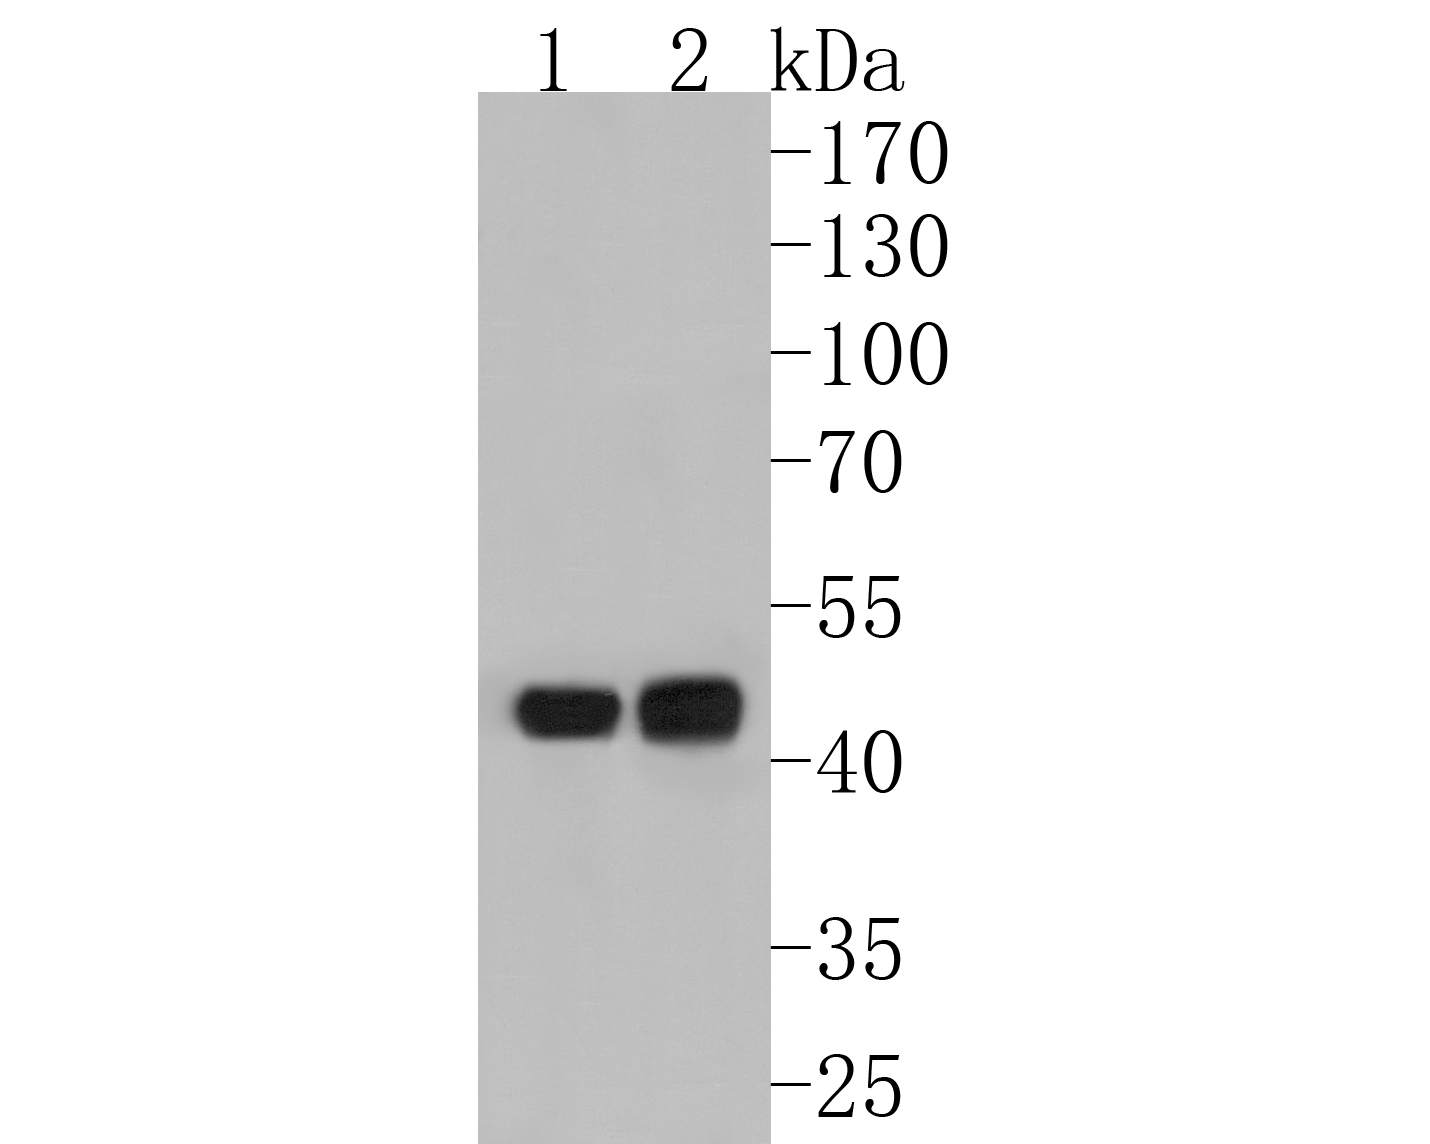 Western blot analysis of gamma Tubulin on different lysates. Proteins were transferred to a PVDF membrane and blocked with 5% BSA in PBS for 1 hour at room temperature. The primary antibody (ET1702-32, 1/500) was used in 5% BSA at room temperature for 2 hours. Goat Anti-Rabbit IgG - HRP Secondary Antibody (HA1001) at 1:5,000 dilution was used for 1 hour at room temperature.<br /> Positive control: <br /> Lane 1: Jurkat cell lysate<br /> Lane 2: A431 cell lysate